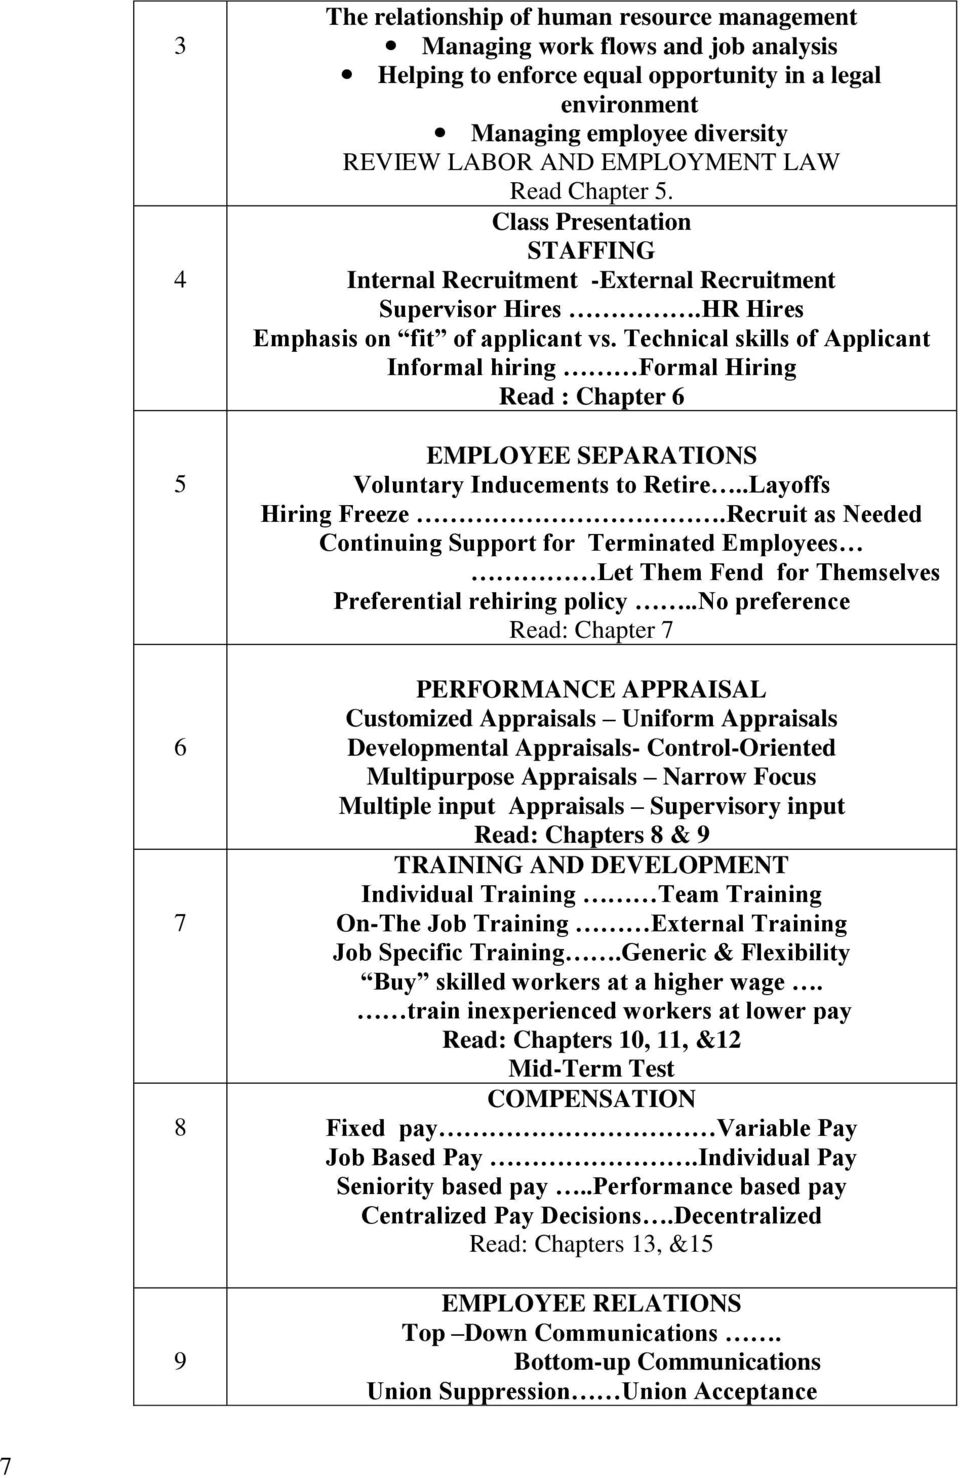 Technical skills of Applicant Informal hiring Formal Hiring Read : Chapter 6 EMPLOYEE SEPARATIONS Voluntary Inducements to Retire..Layoffs Hiring Freeze.